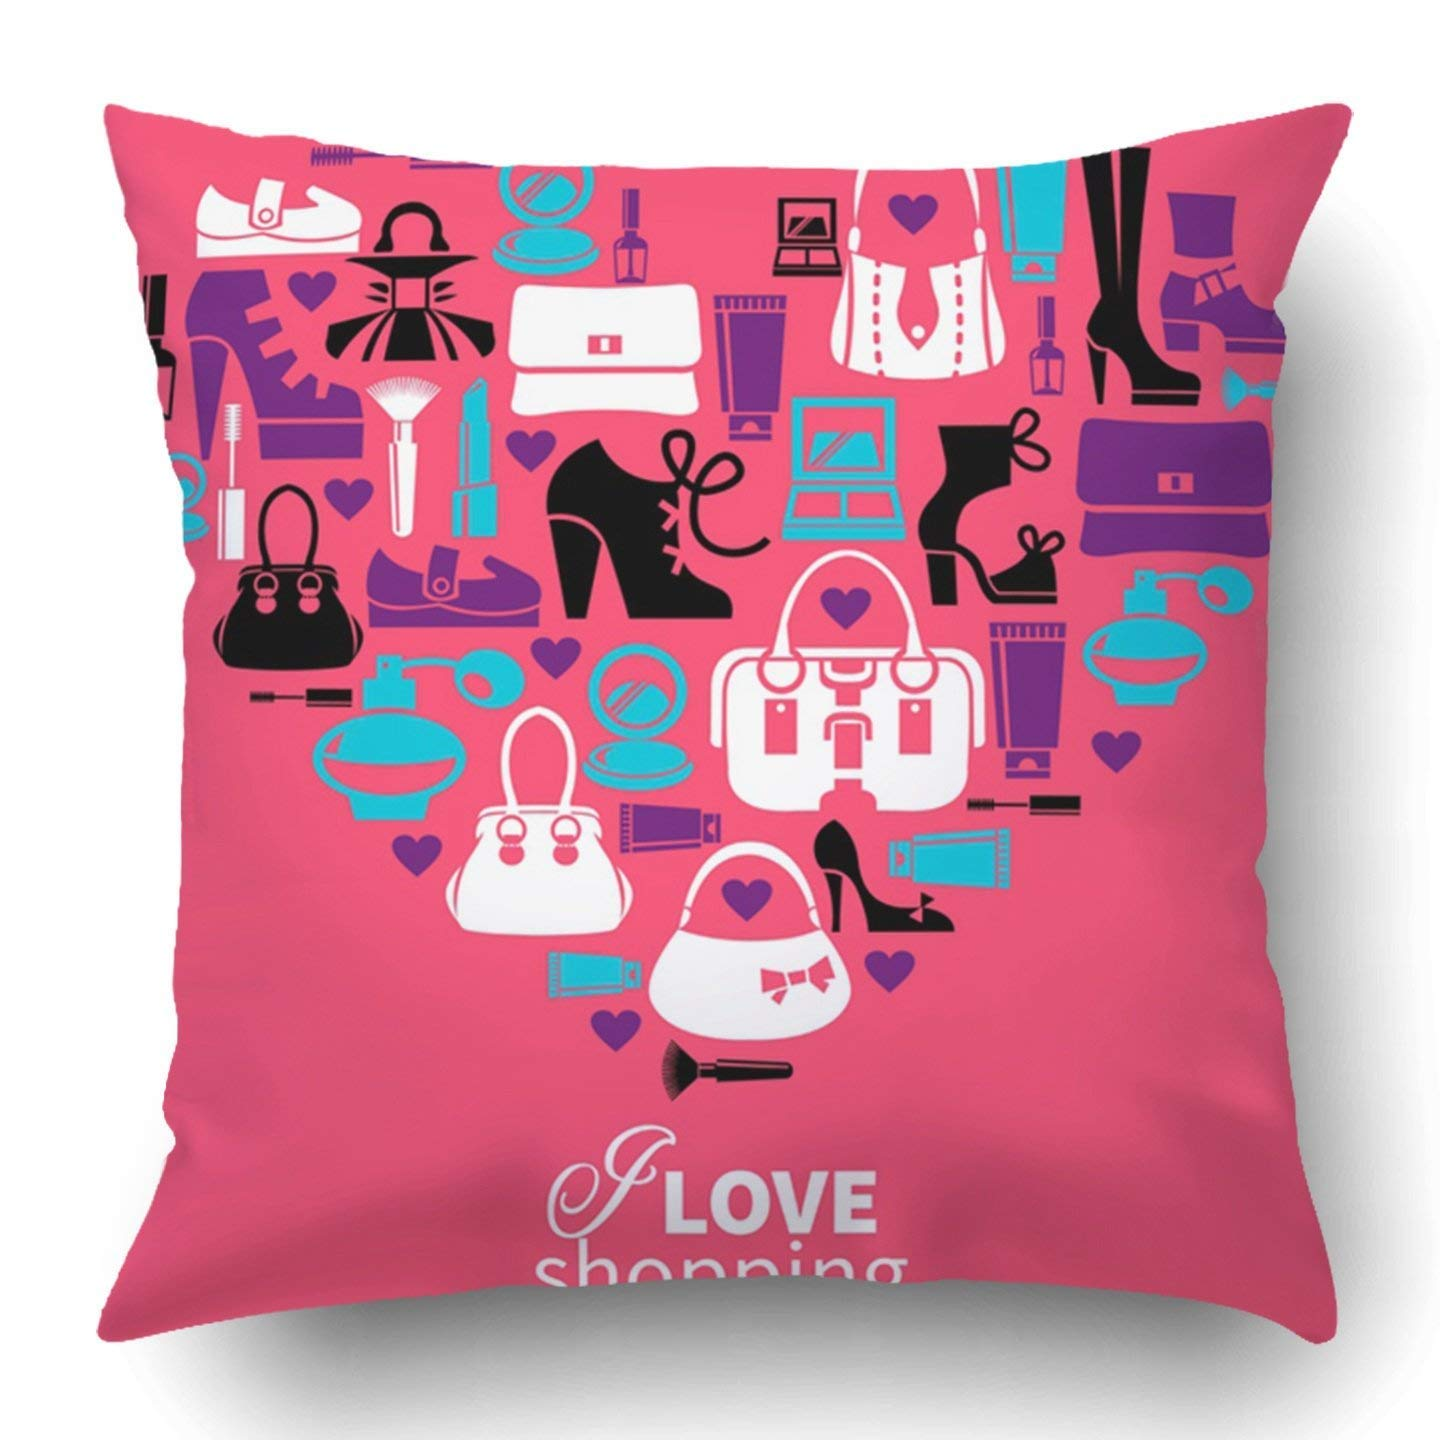 Throw Pillow Covers Makeup Shopping Love Heart Women s Accessories  Silhouette Brush Graphic Care Perfume Sale Polyester 18 X 18 inch Square  Hidden Zipper ... f44f8f1fb0